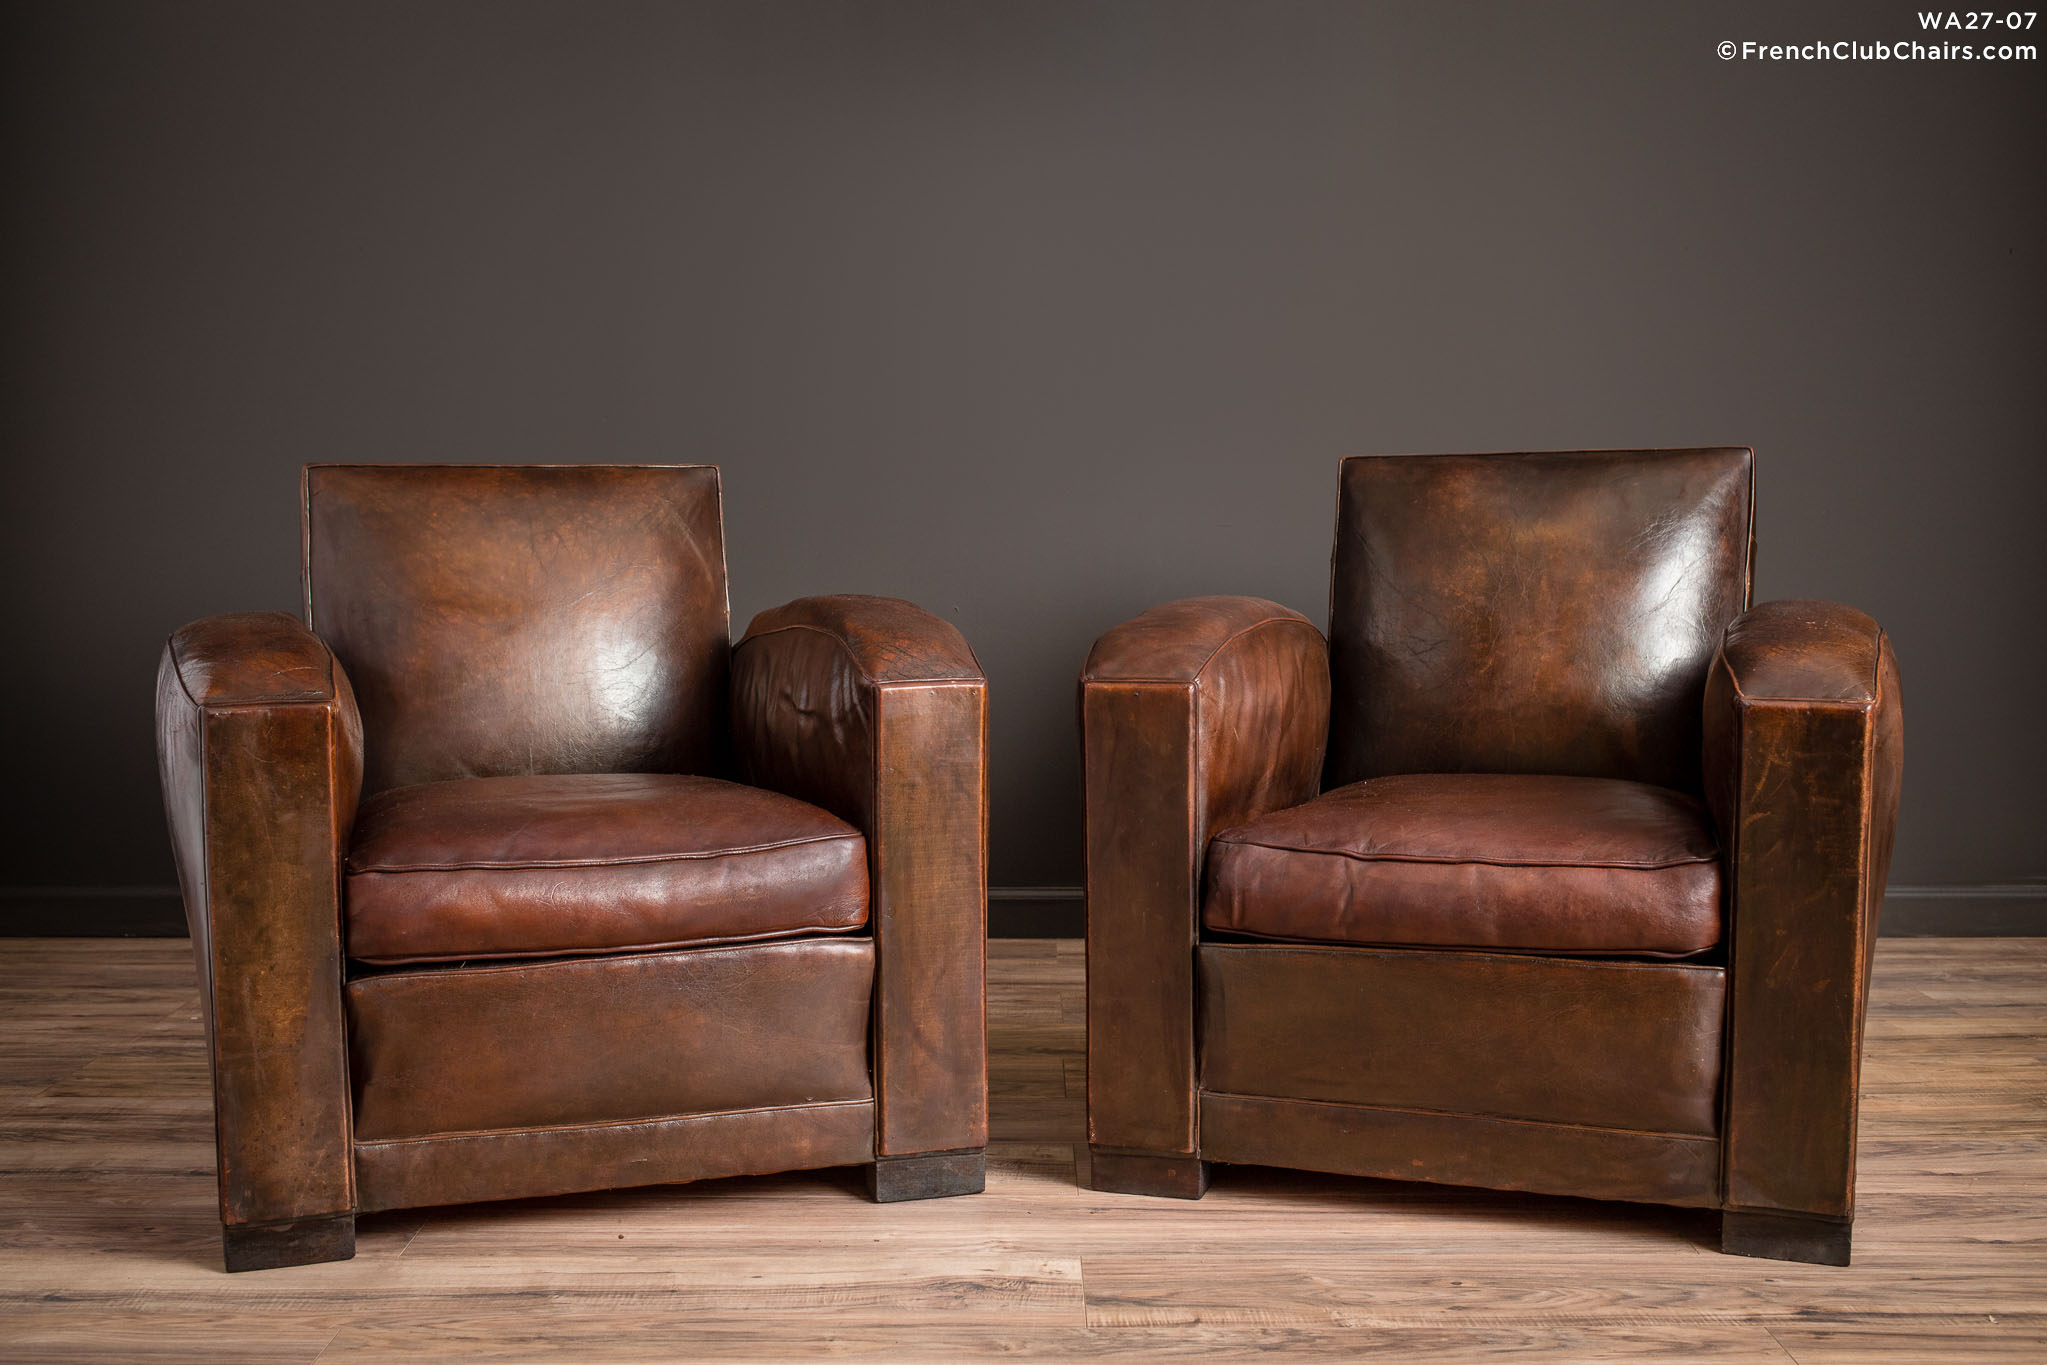 WA_27-07_La_Republic_Square_Lounge_Pair_R_1TQ-v01-williams-antiks-leather-french-club-chair-wa_fcccom